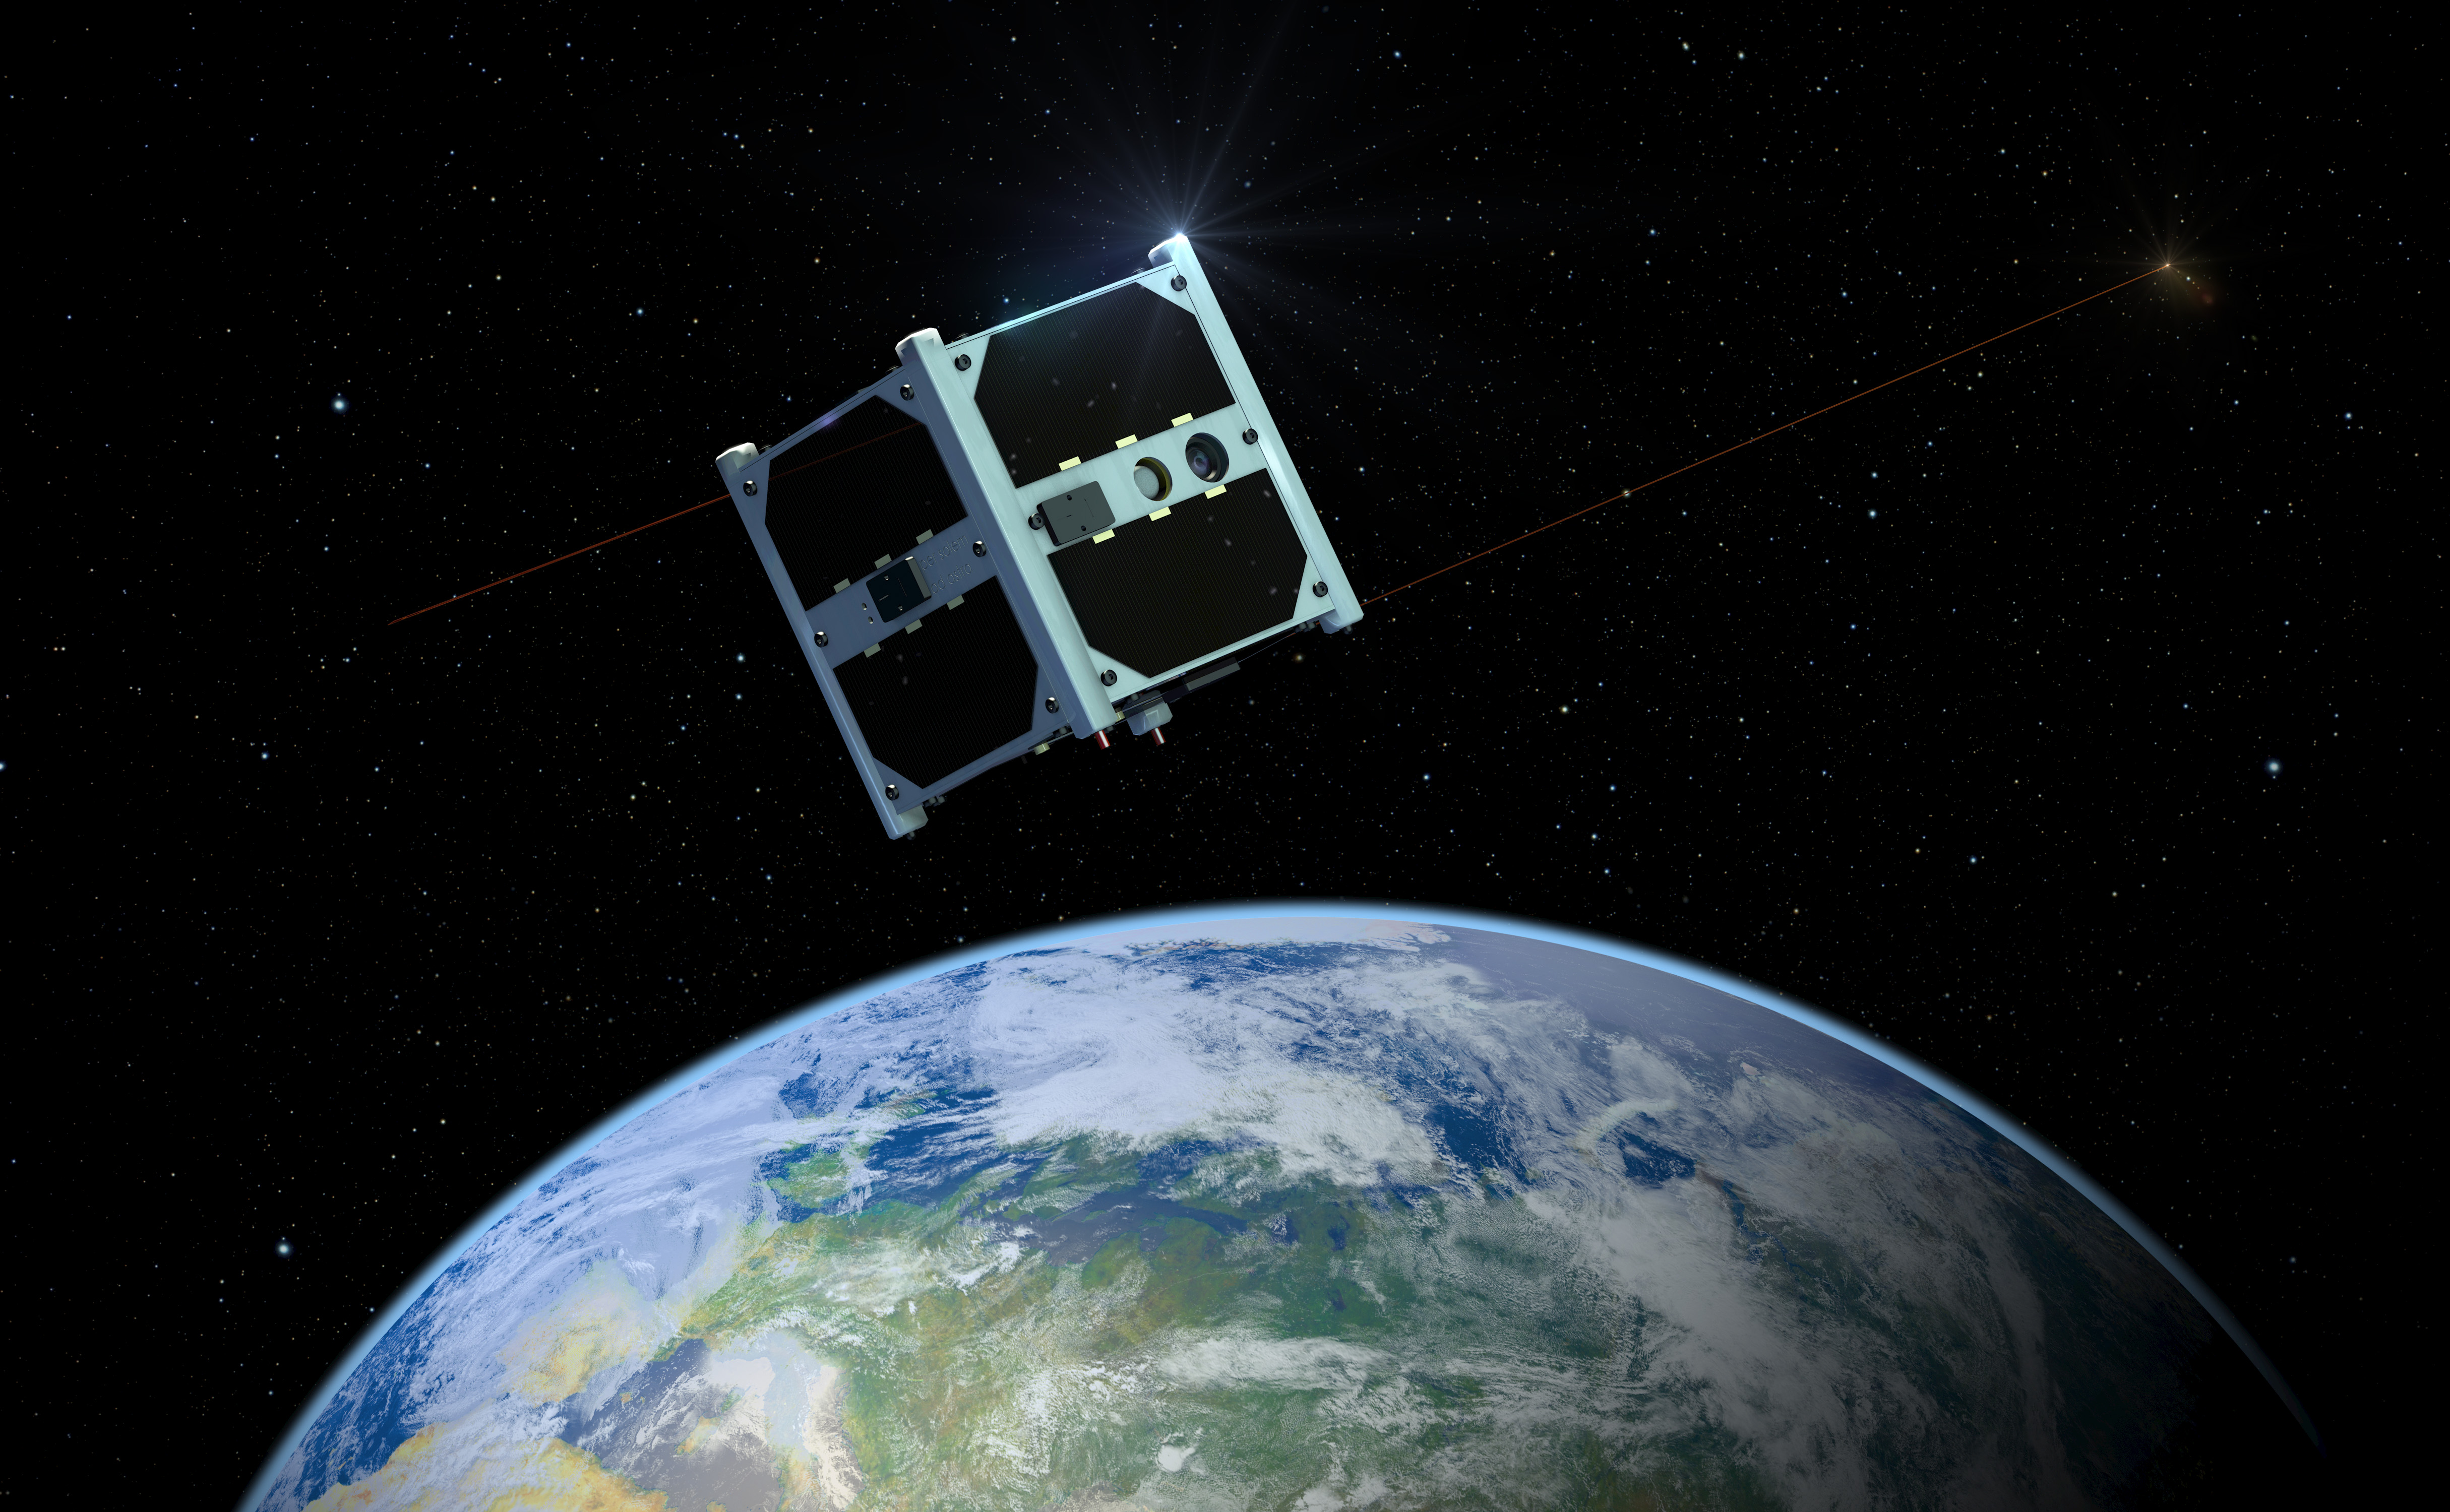 smallsat modem high speed data by txmission